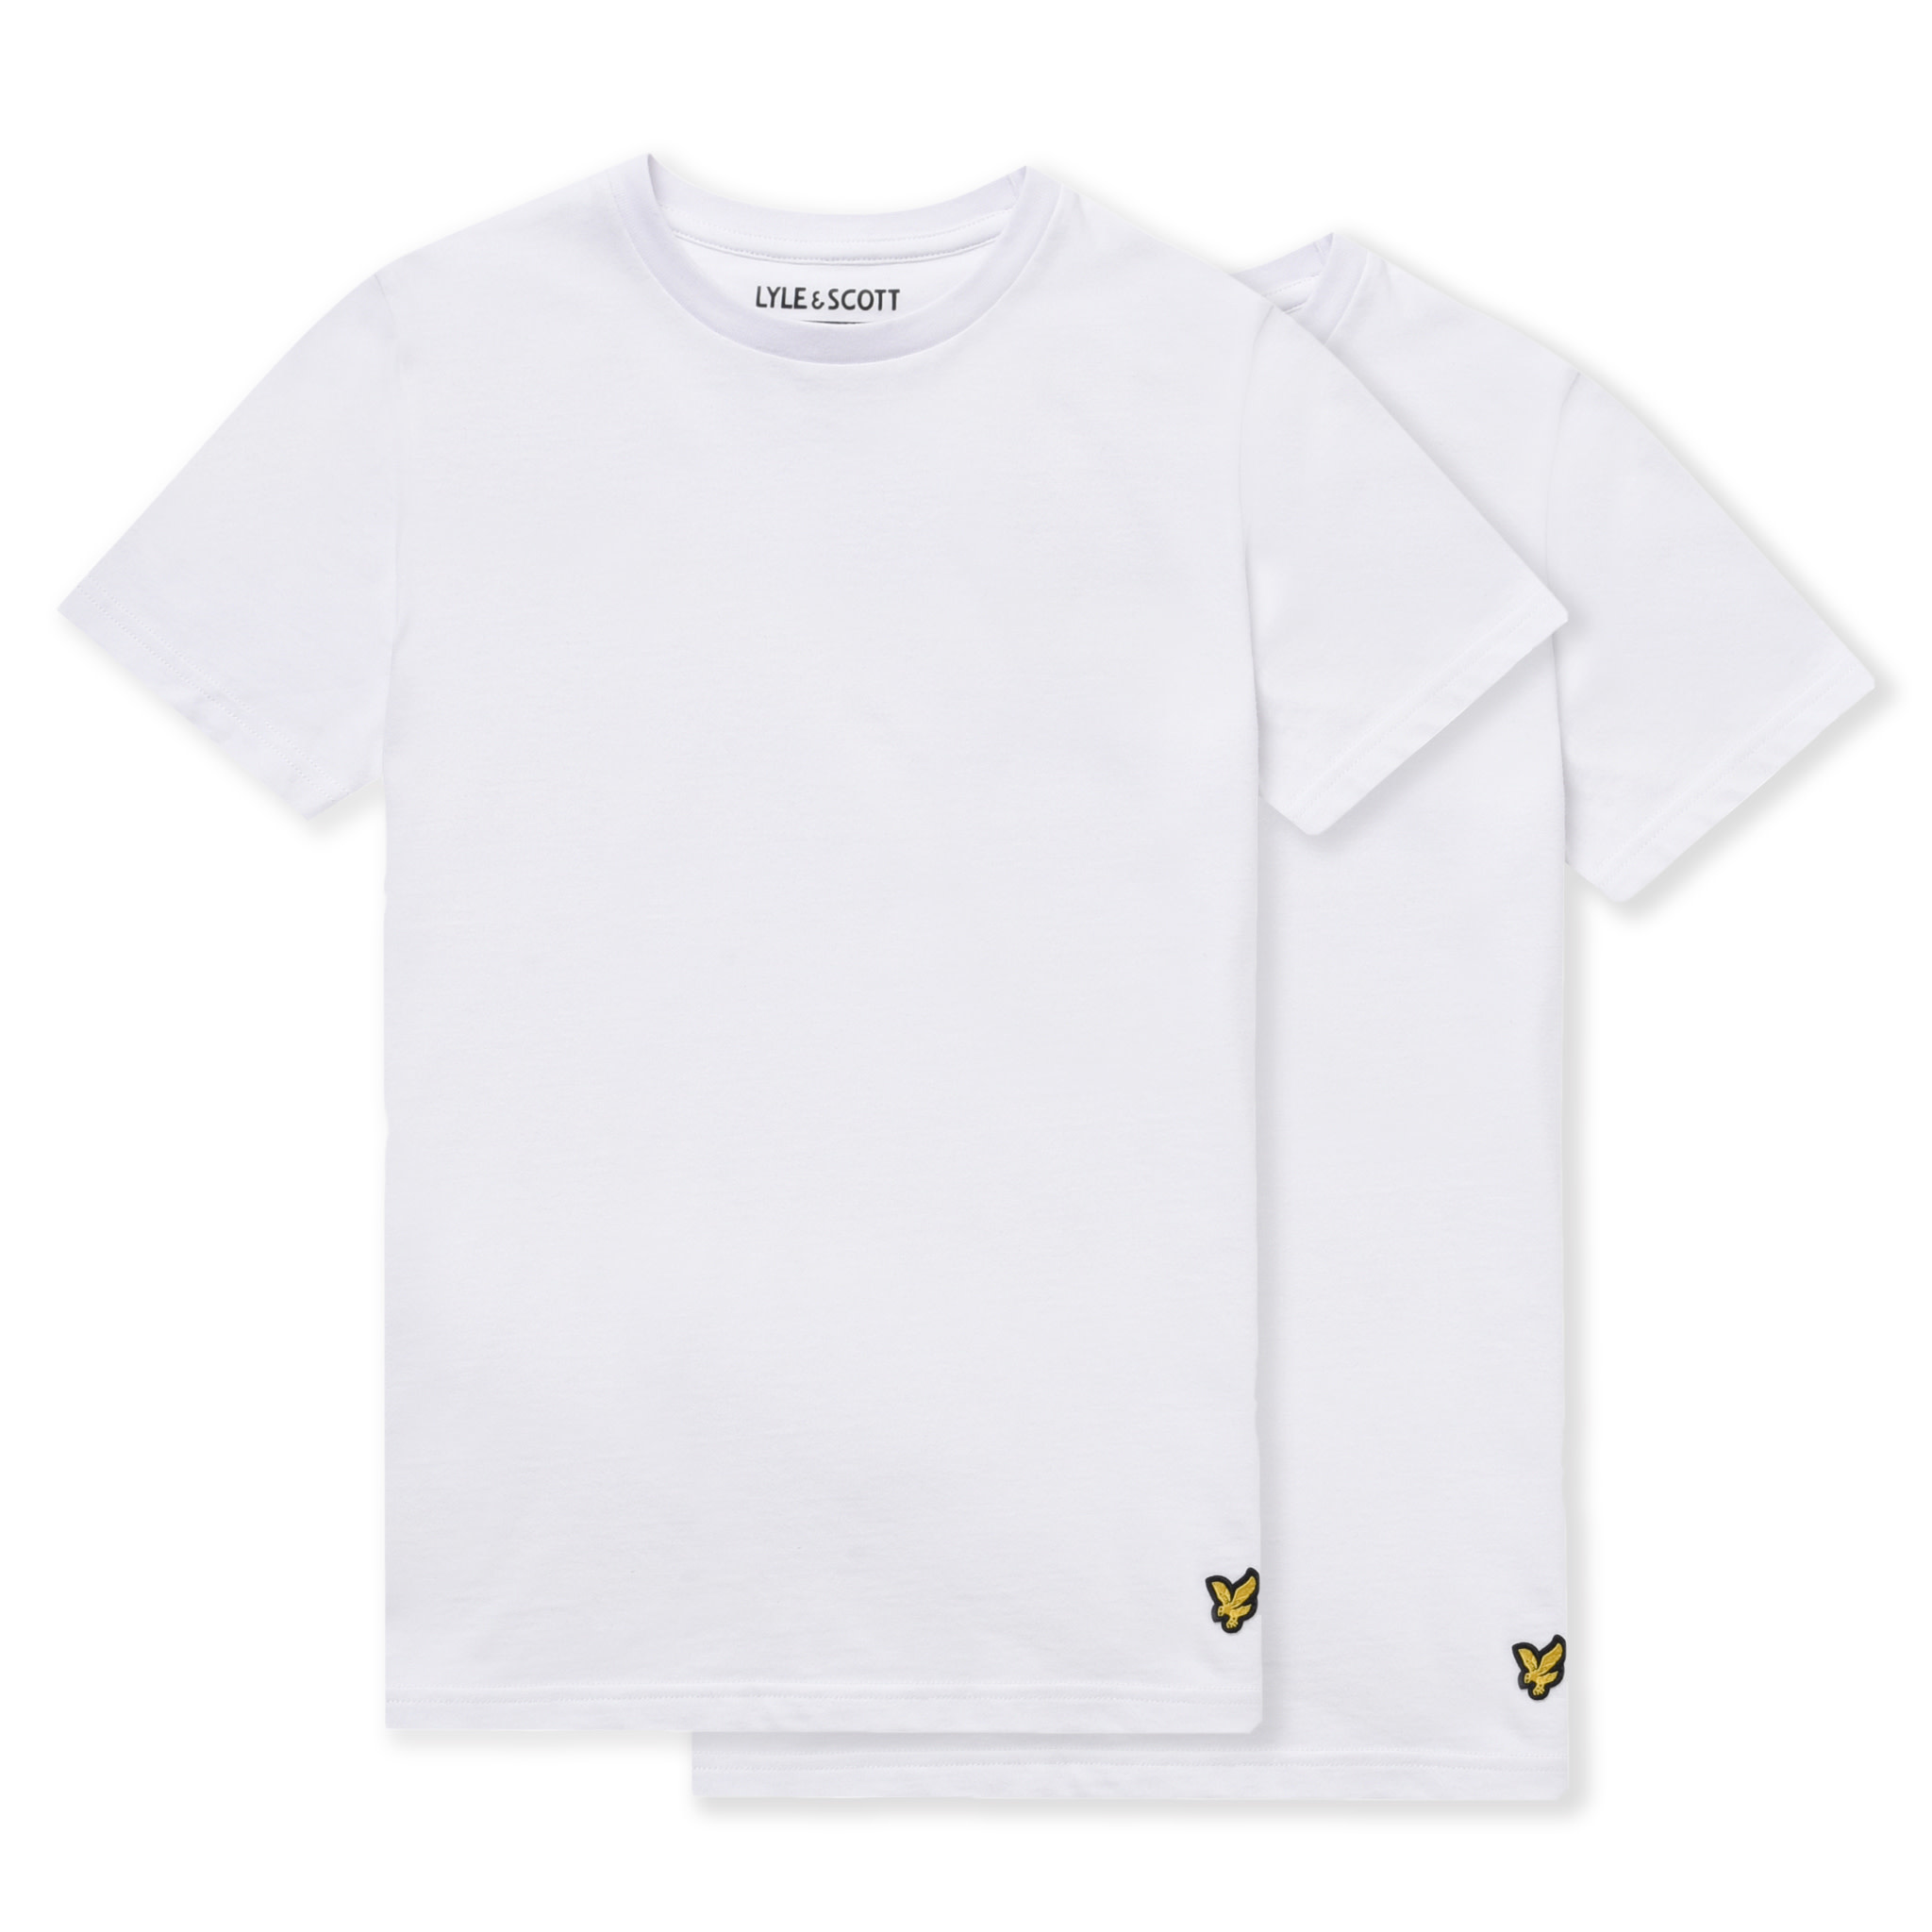 Lyle & Scott 2 Pack T-Shirt